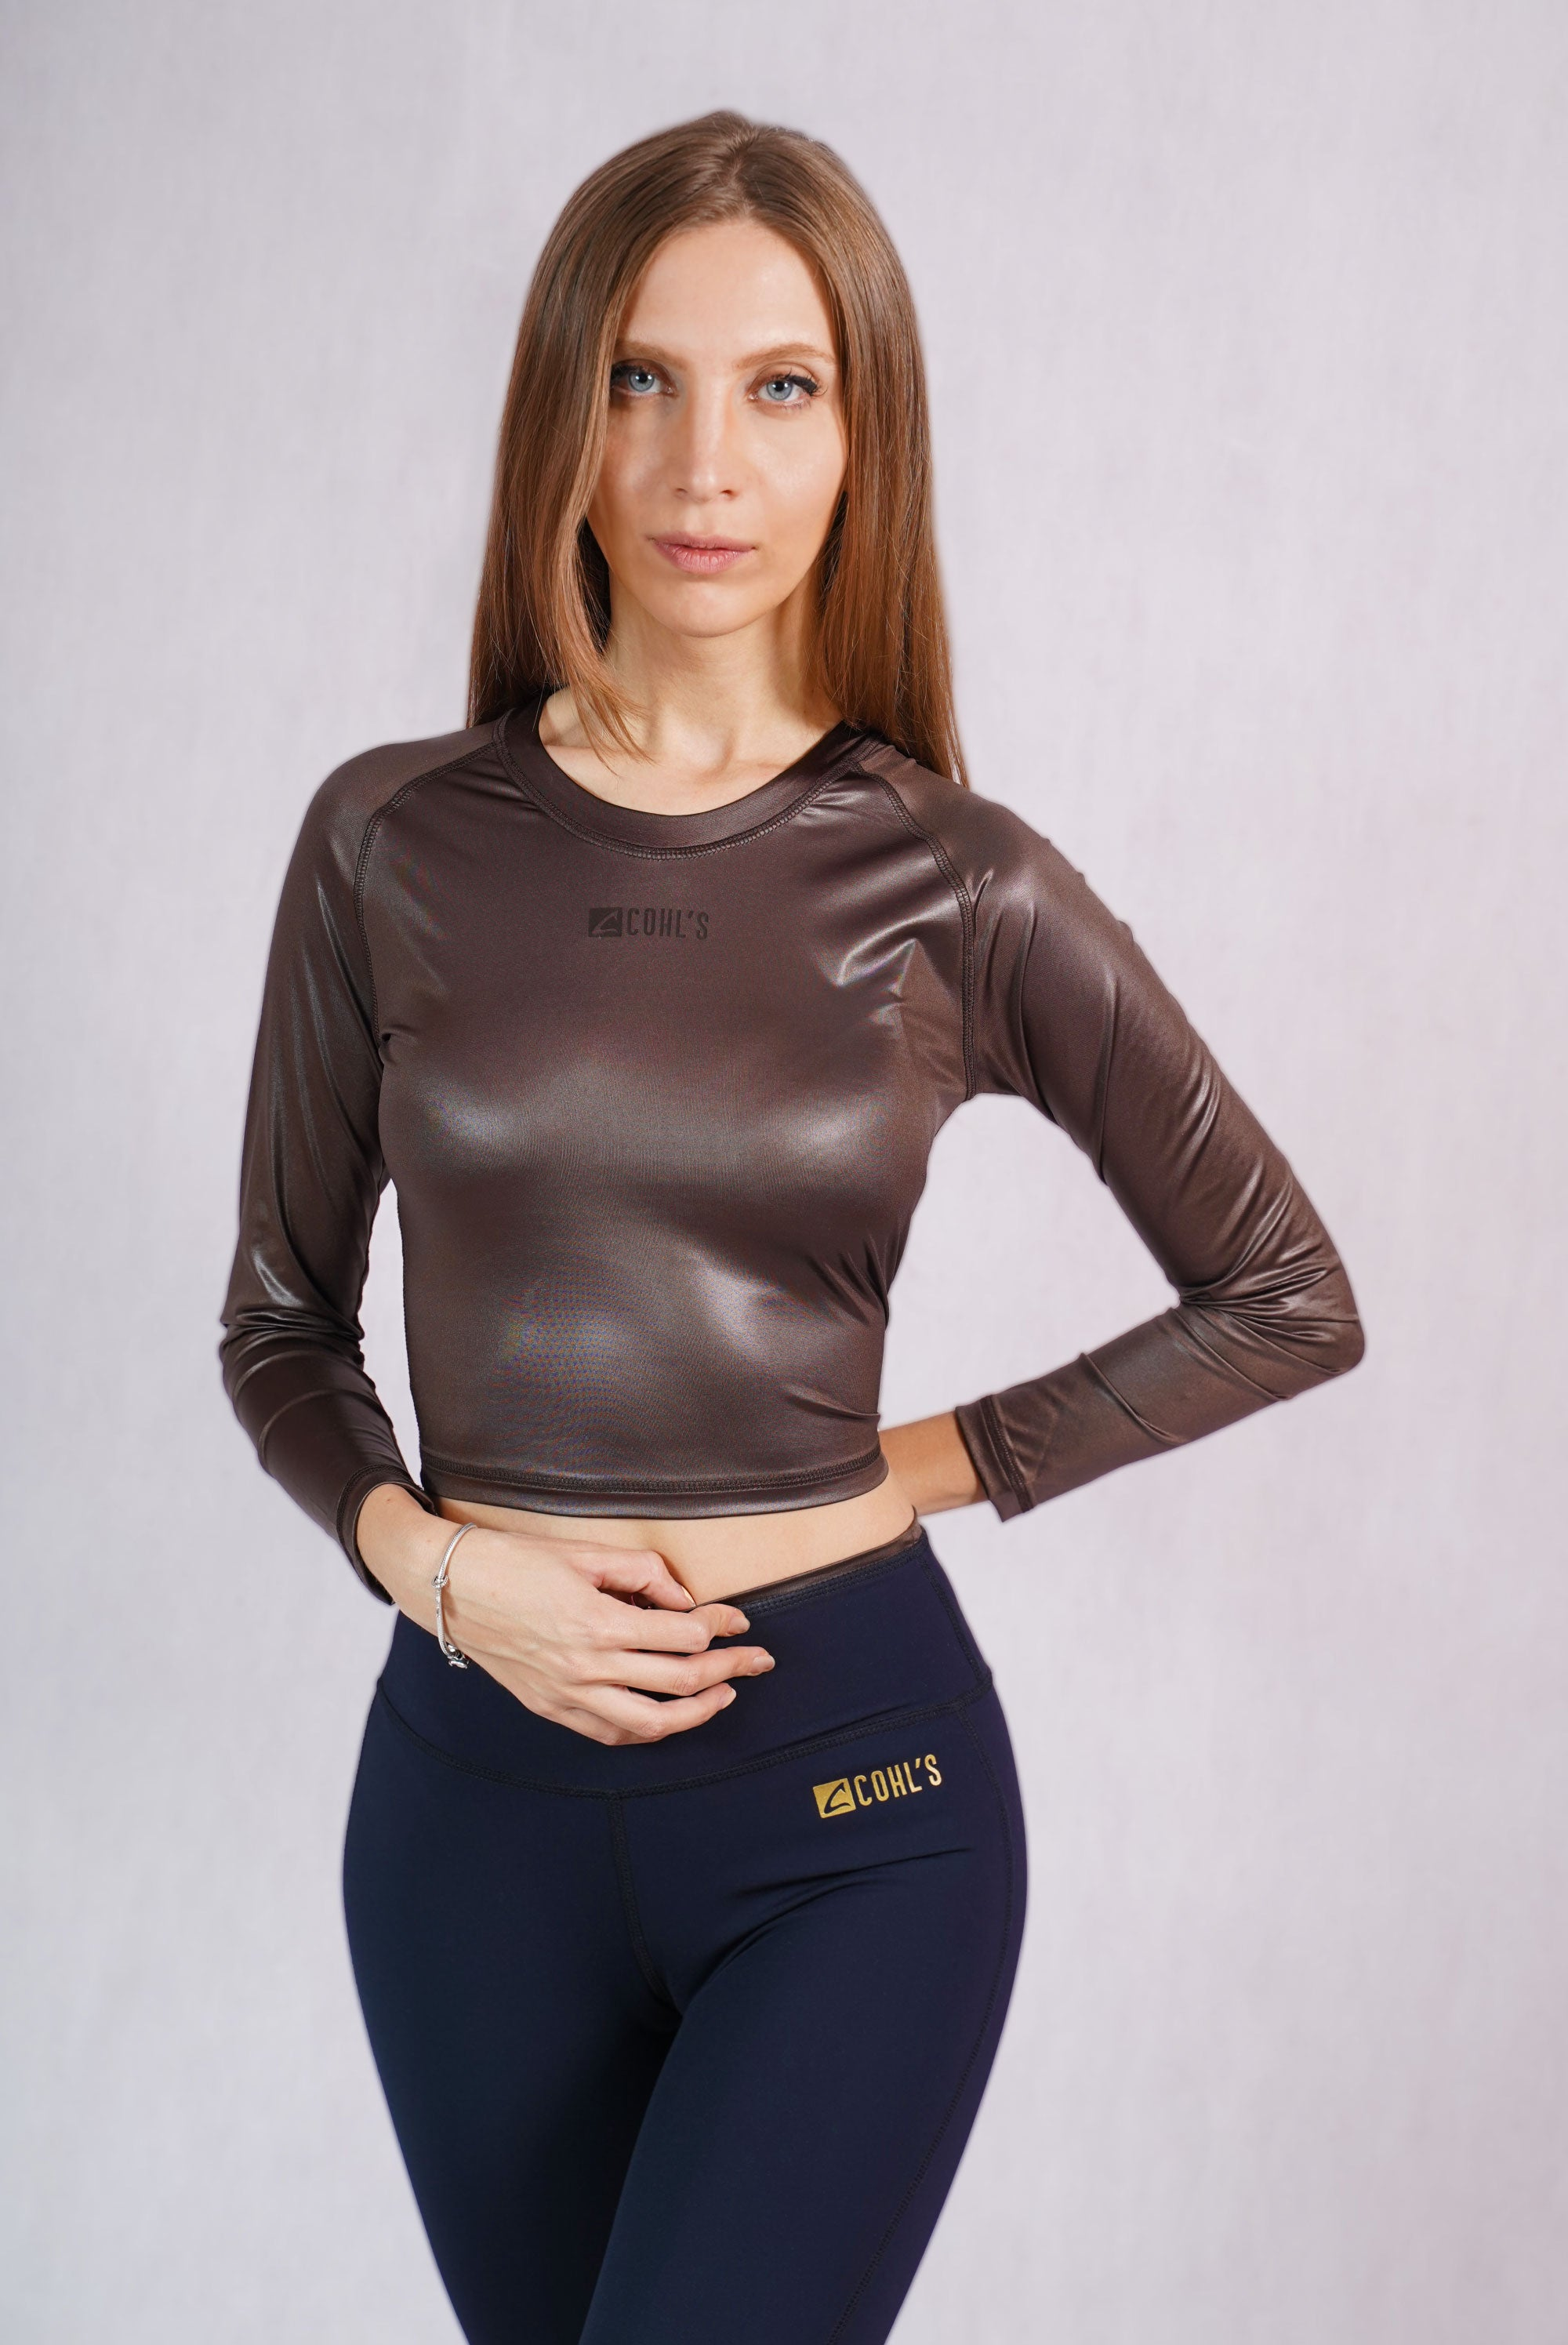 Glossy Brown Slim Fit Crop Top - C142015